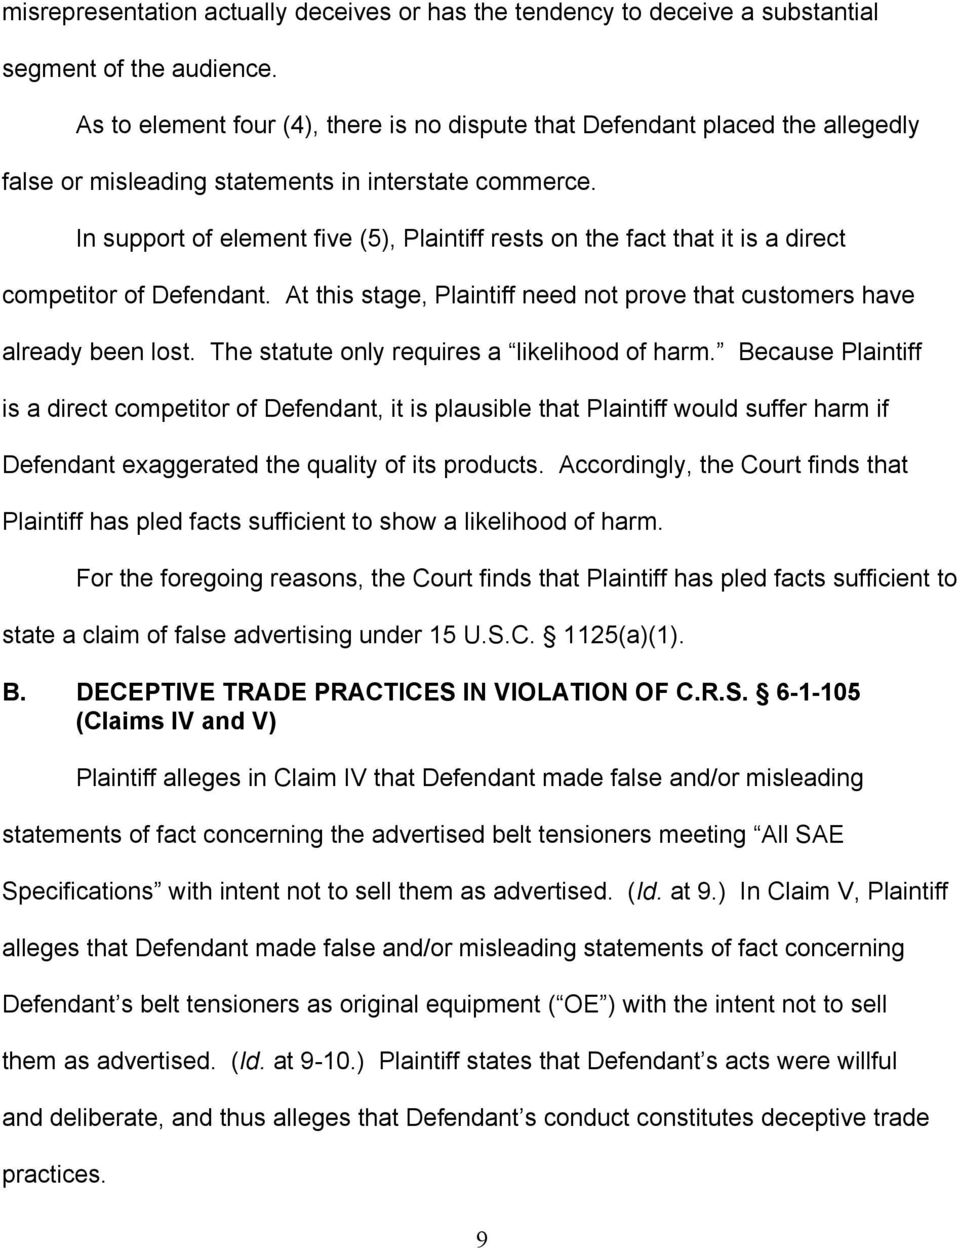 In support of element five (5), Plaintiff rests on the fact that it is a direct competitor of Defendant. At this stage, Plaintiff need not prove that customers have already been lost.